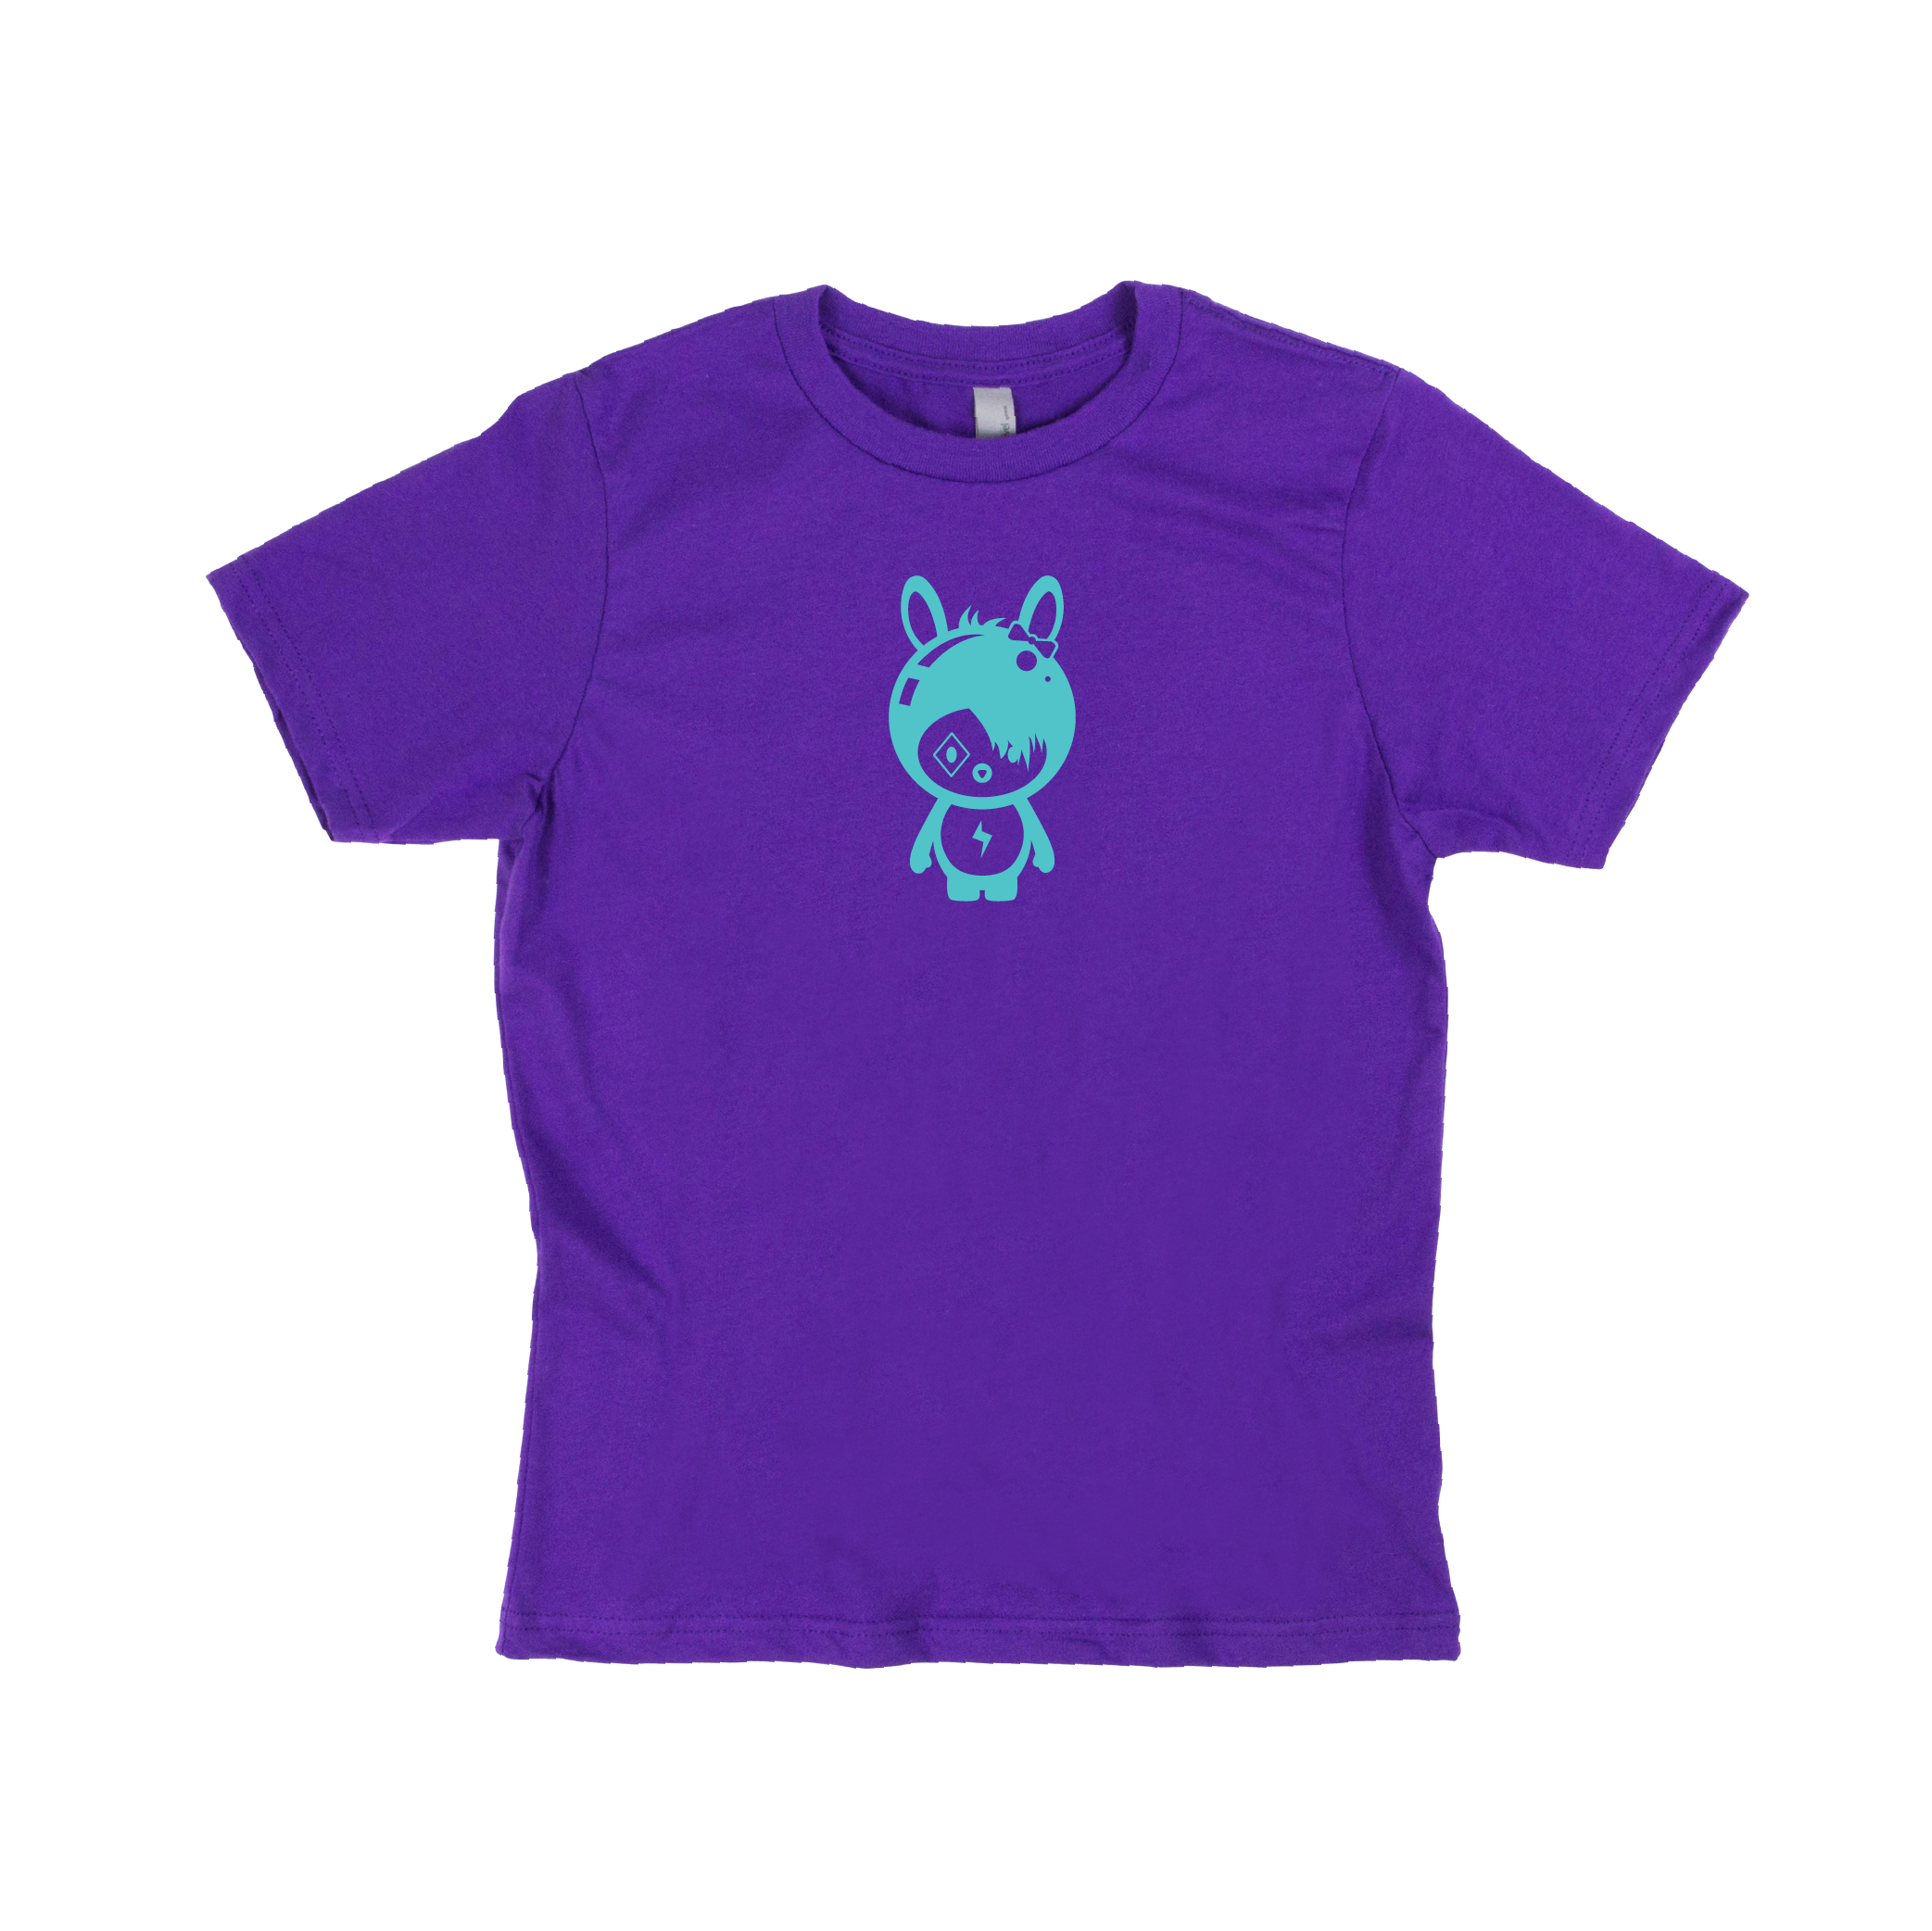 Momomoon Punk - Kids Purple Shirt